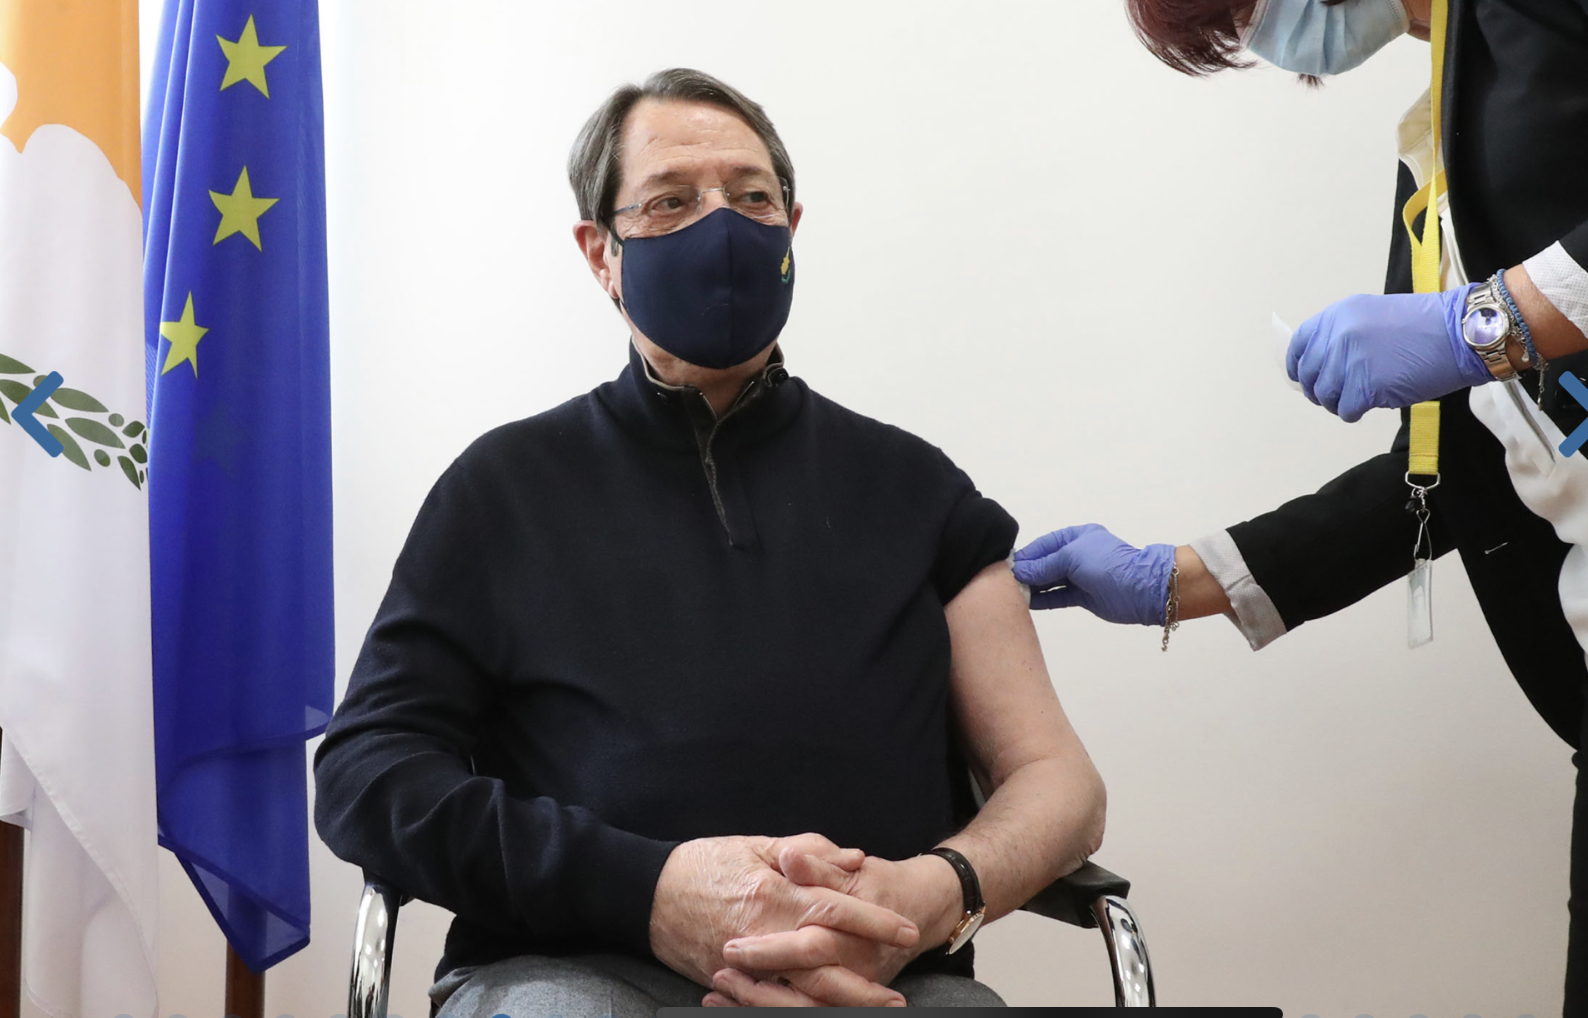 Cyprus: Anastasiades described the coronavirus vaccine as a gift of life